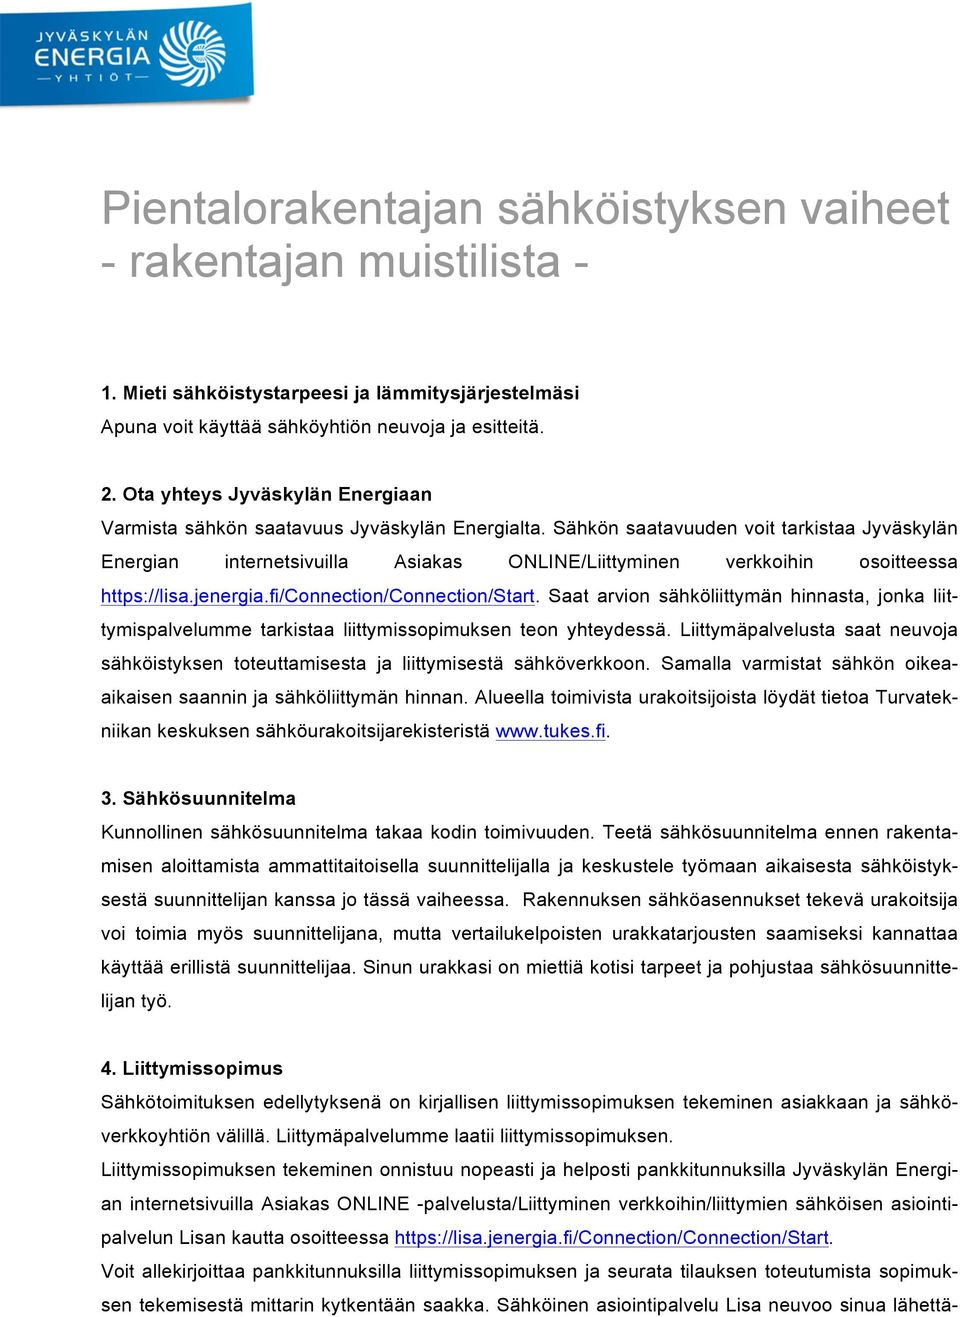 Sähkön saatavuuden voit tarkistaa Jyväskylän Energian internetsivuilla Asiakas ONLINE/Liittyminen verkkoihin osoitteessa https://lisa.jenergia.fi/connection/connection/start.